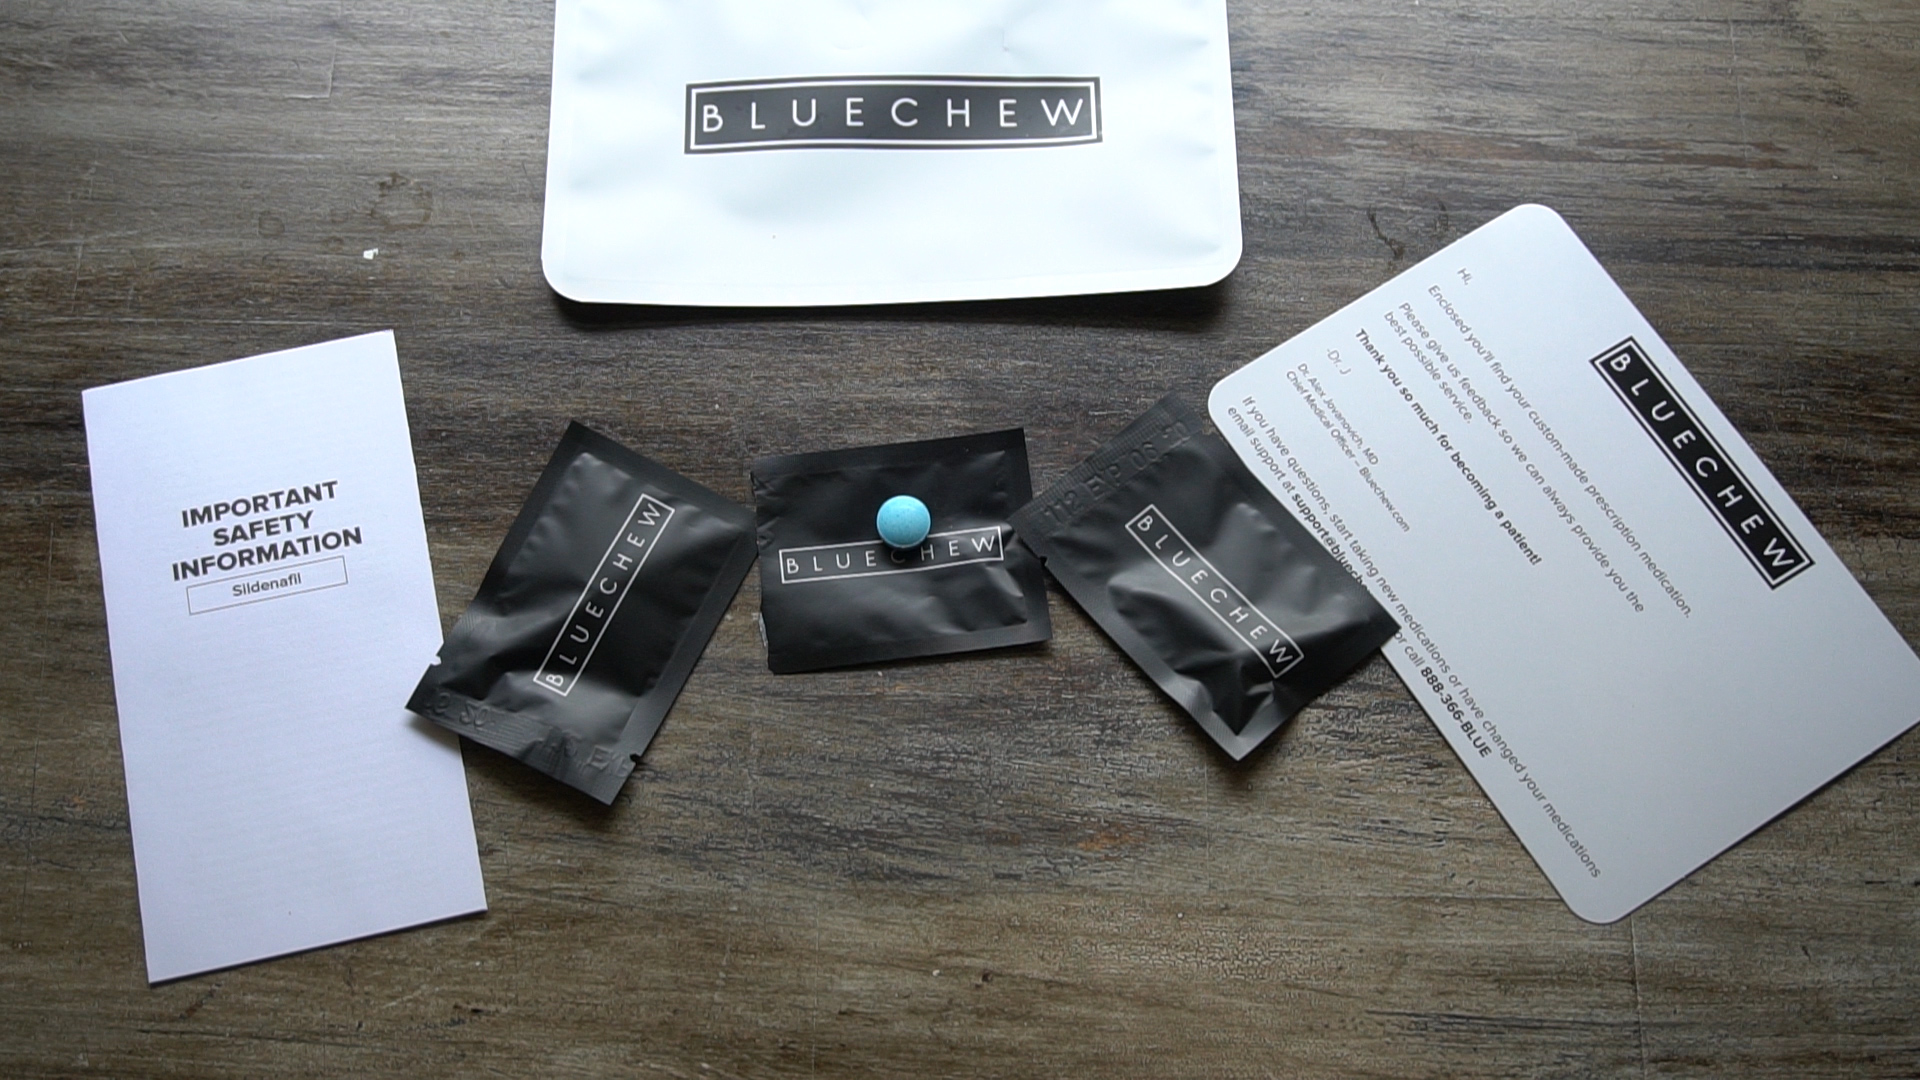 Bluechew Is An Online Service To Connect Patients